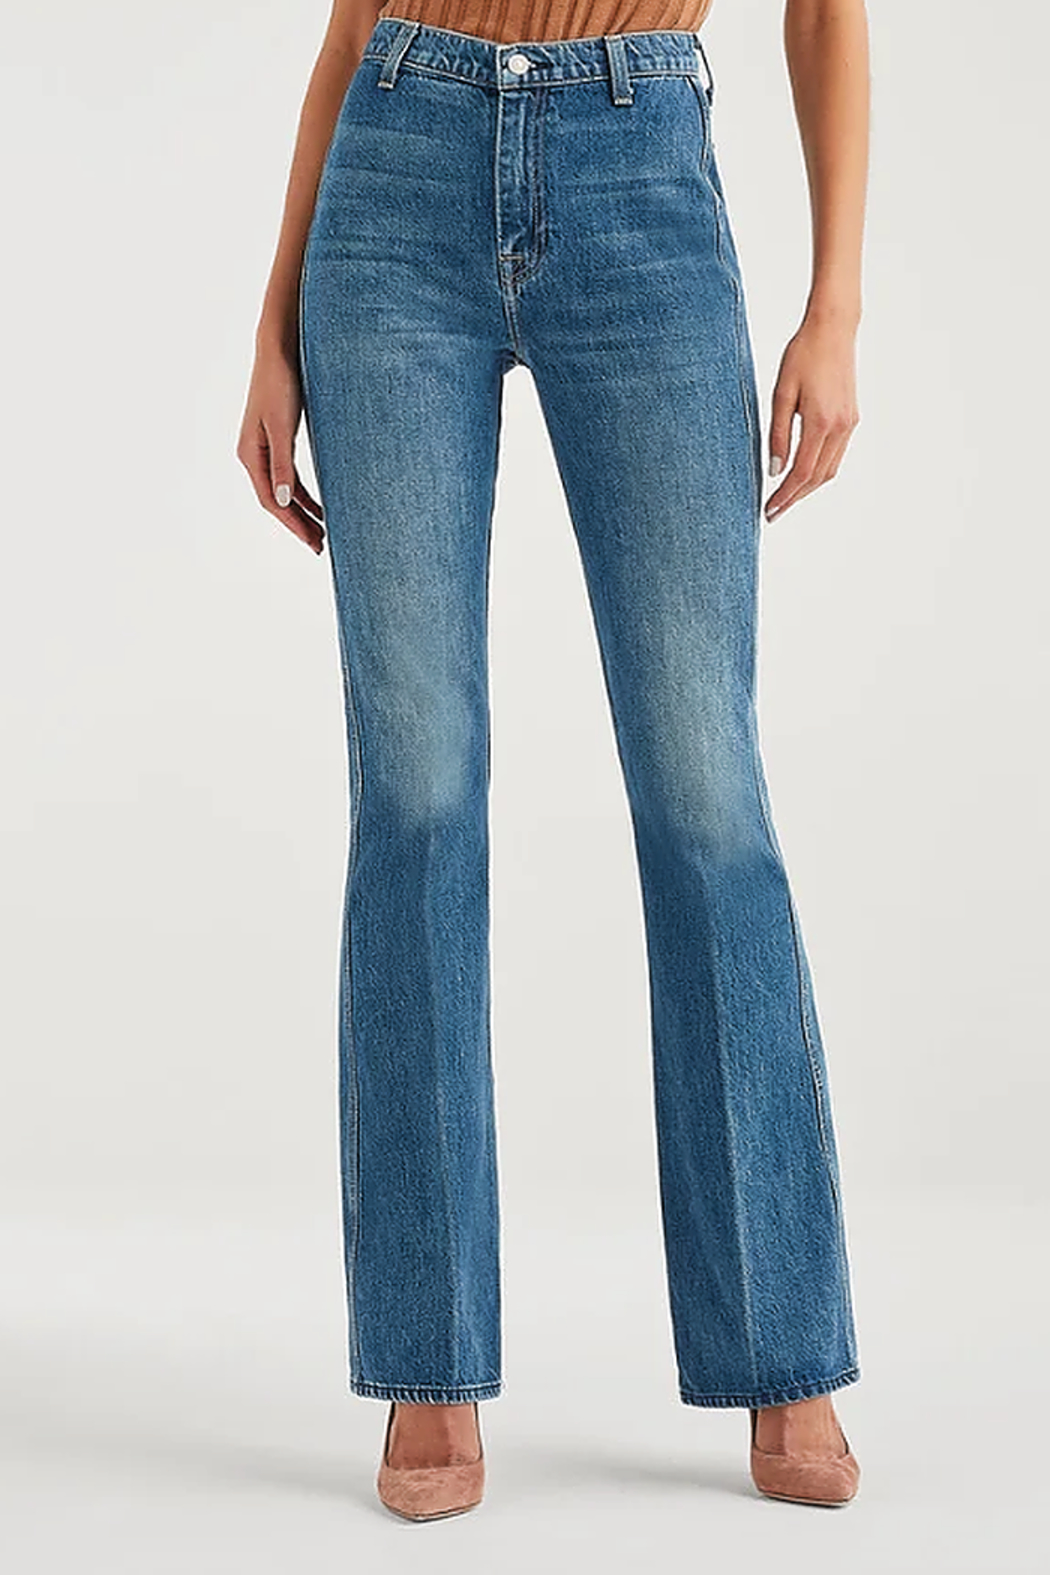 7 For all Mankind Modern A Pocket Jeans - Front Full Image